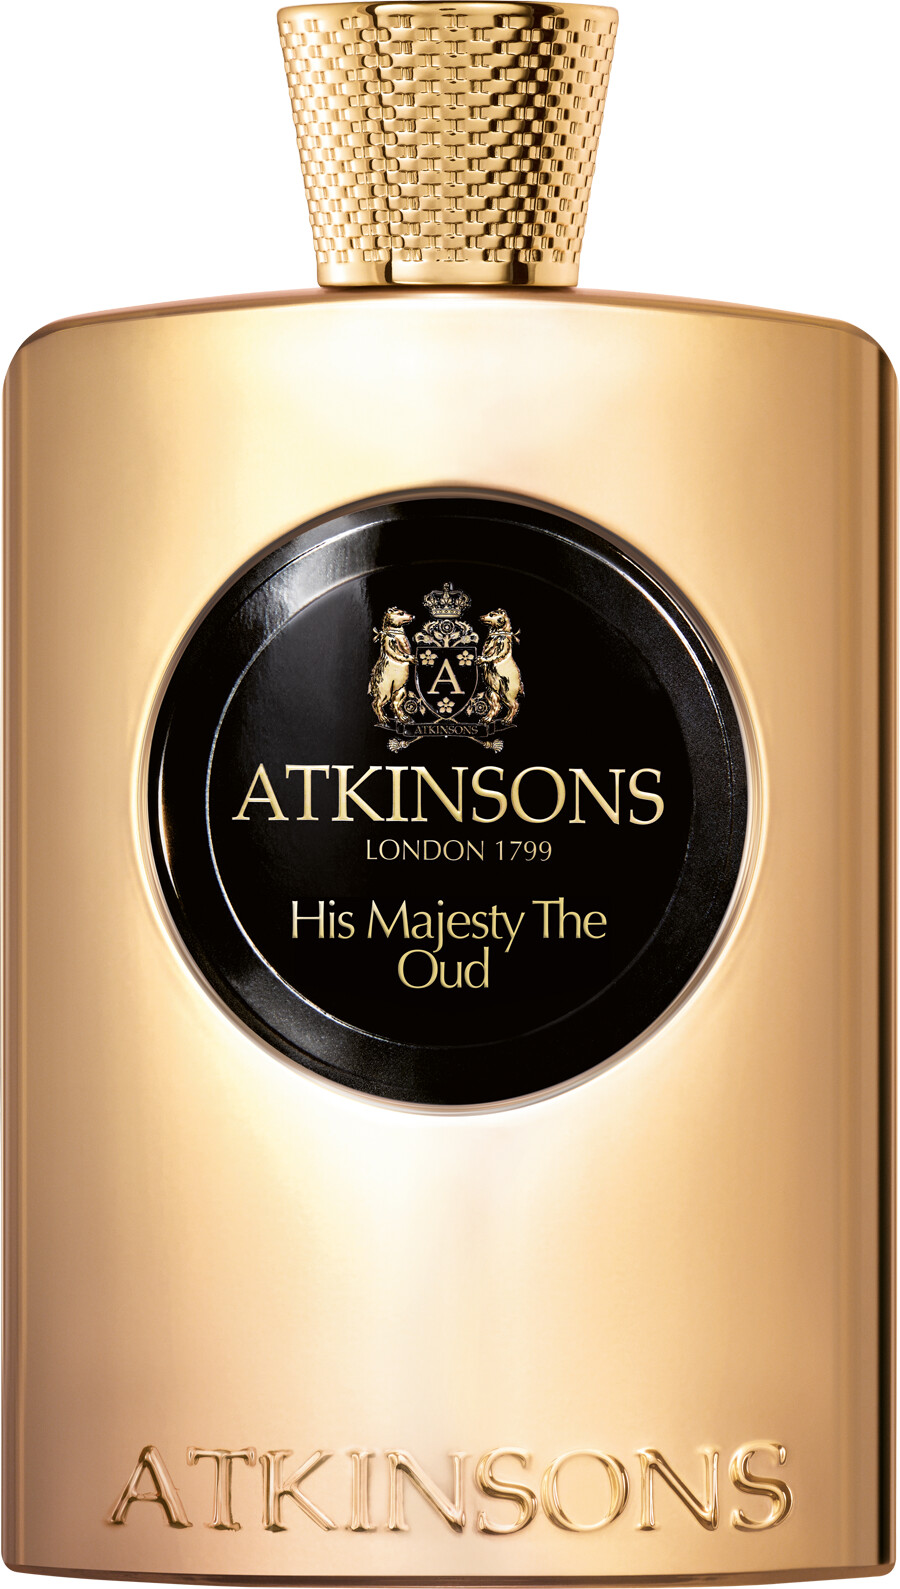 atkinsons his majesty the oud eau de parfum spray. Black Bedroom Furniture Sets. Home Design Ideas